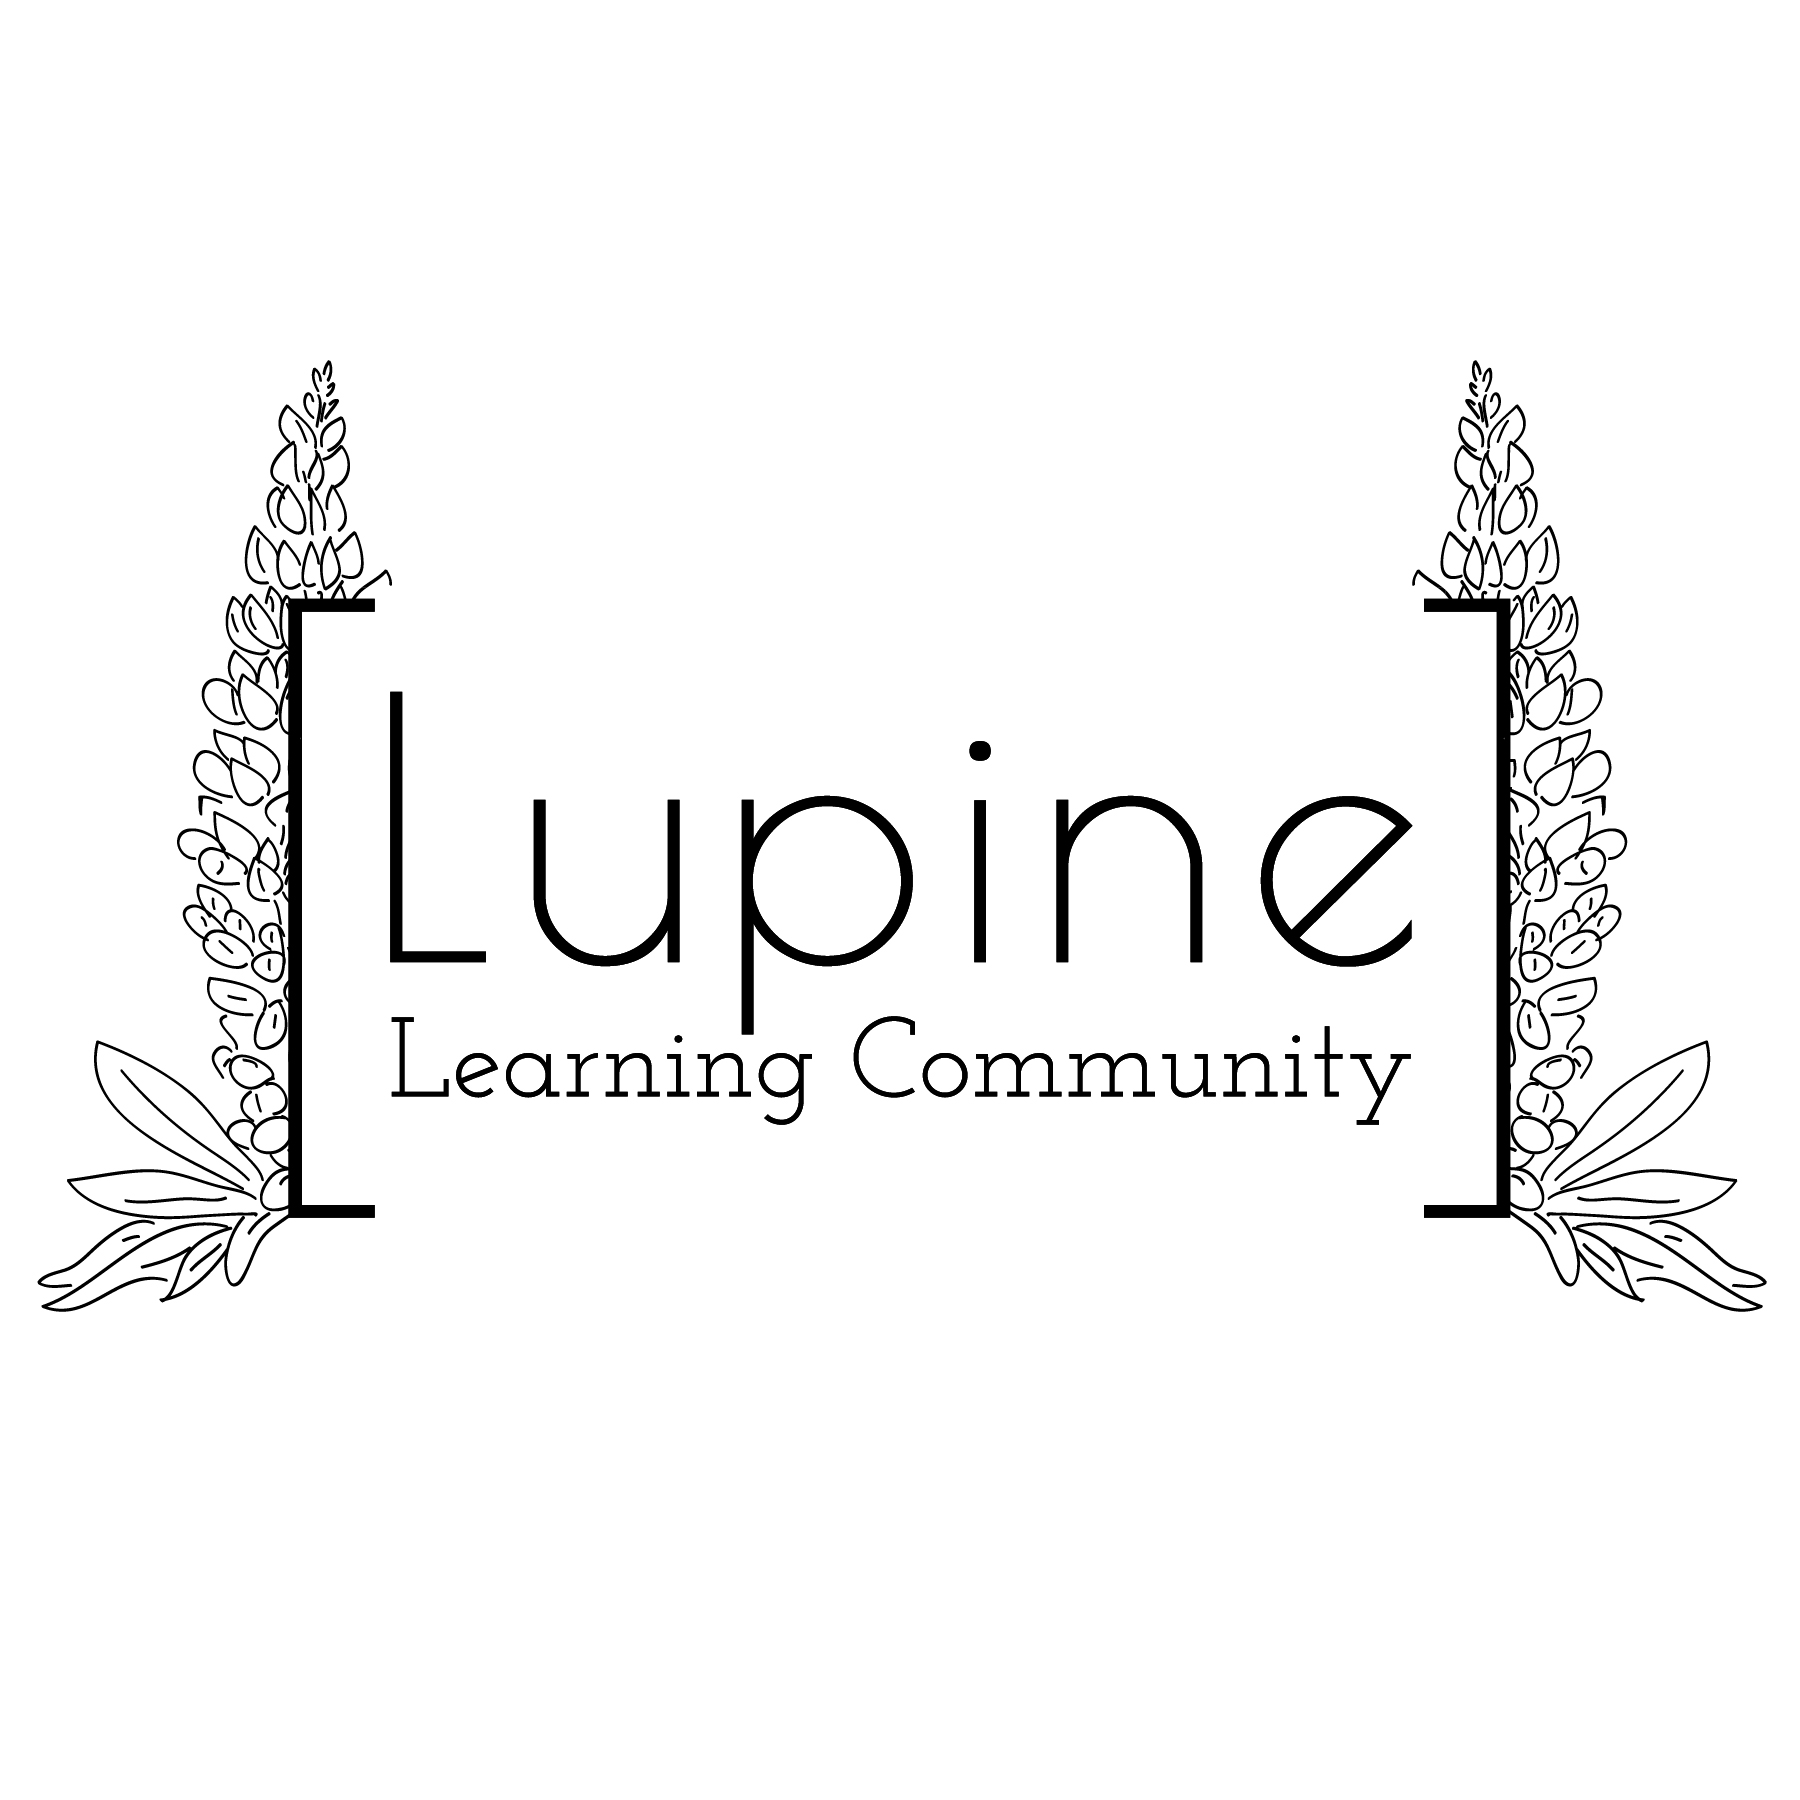 Lupine Learning Community